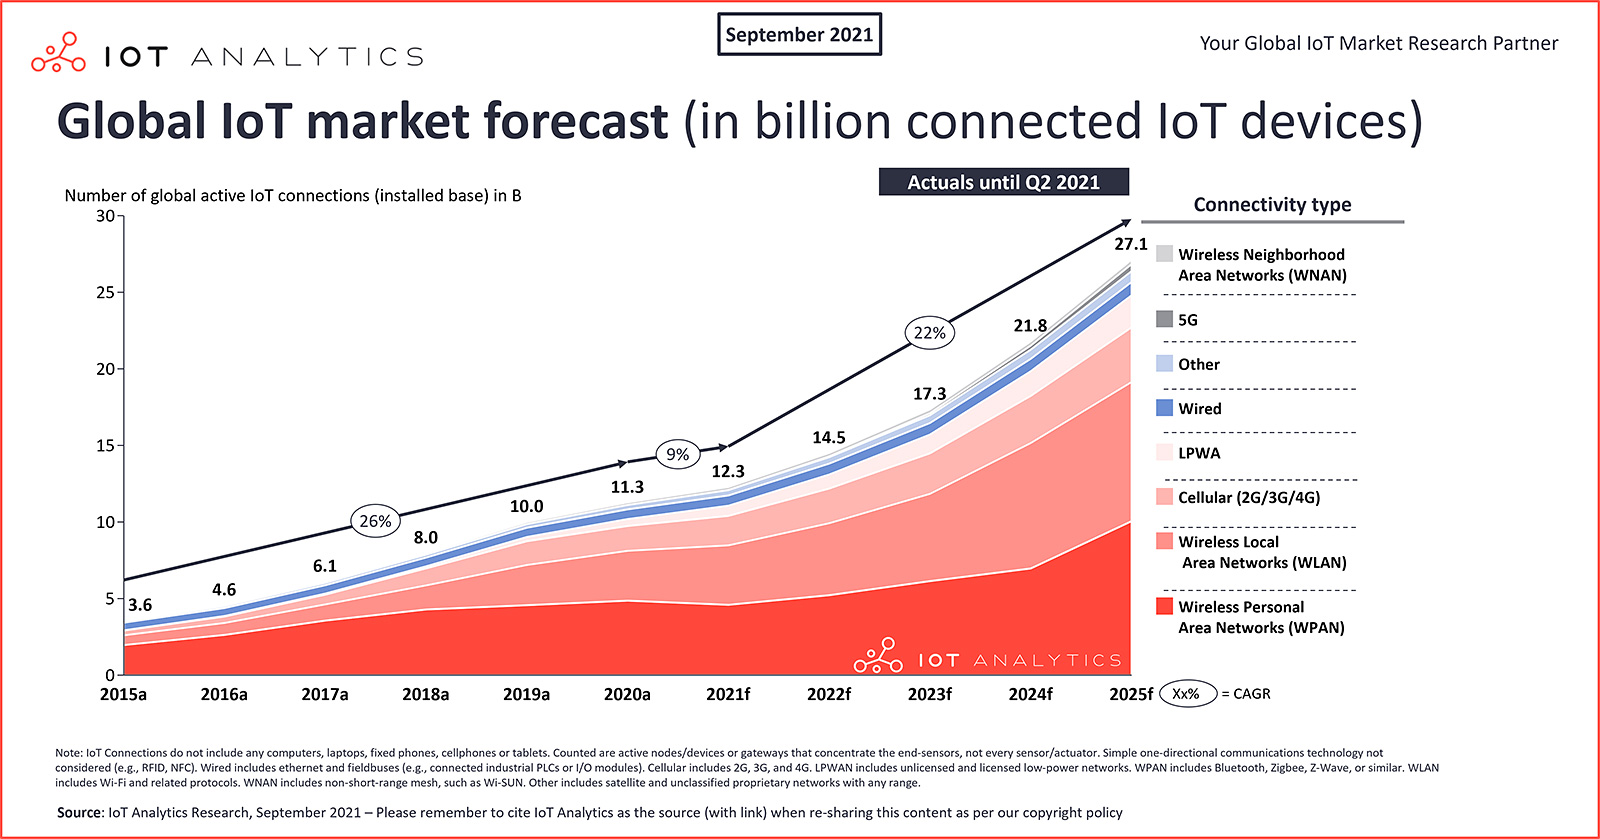 IoT Analytics chart: global IoT market forecast in billion of connected IoT devices